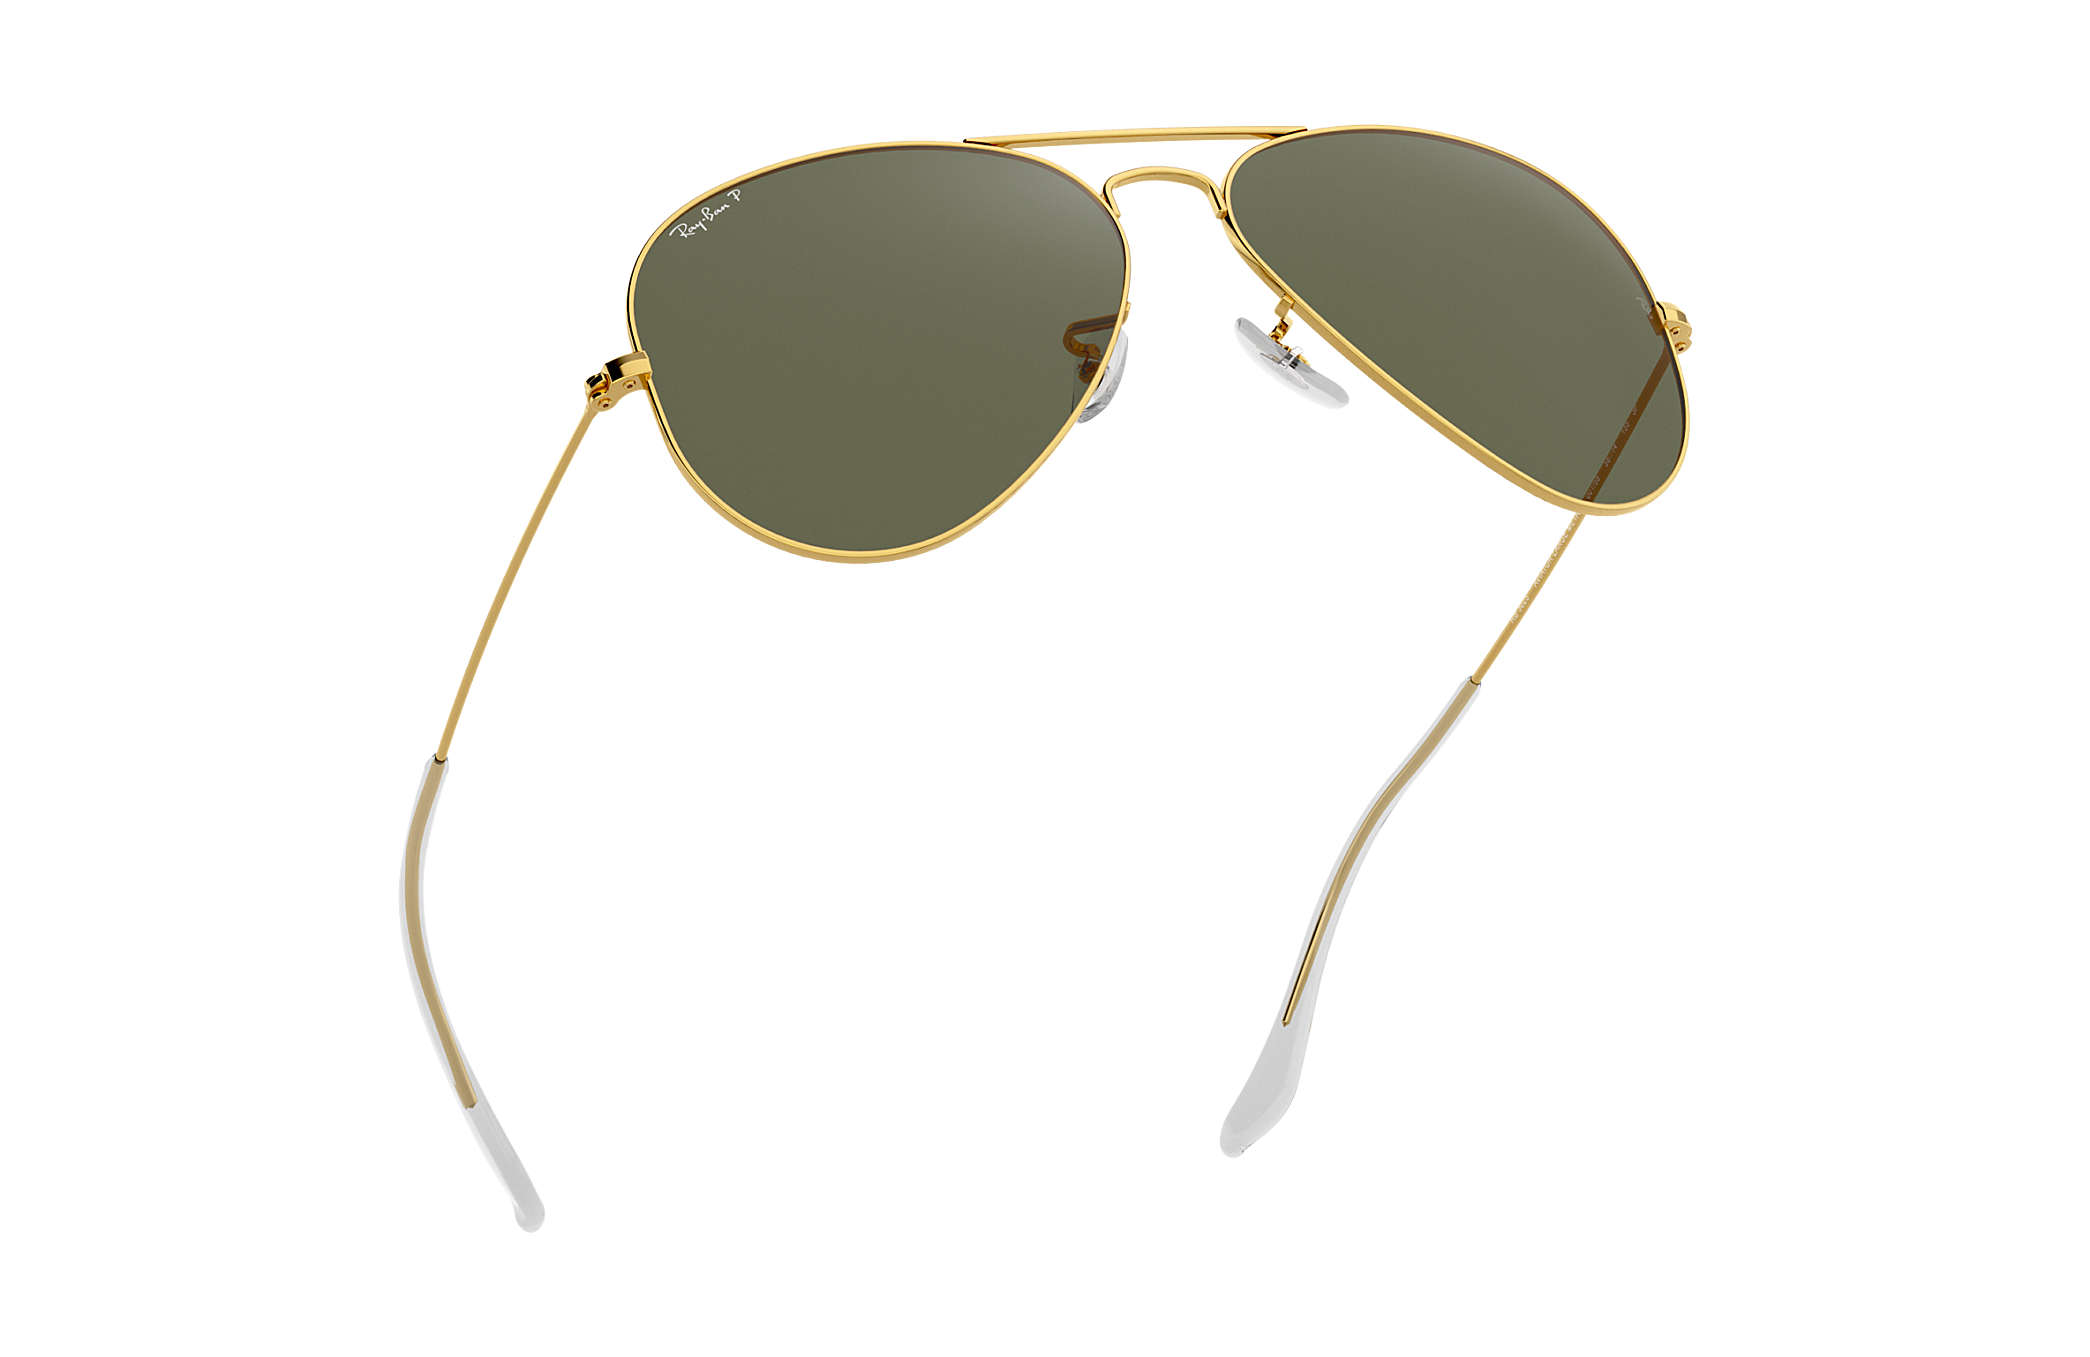 6cd37e6b15a8 Ray-Ban Aviator Classic RB3025 Gold - Metal - Green Polarized Lenses ...